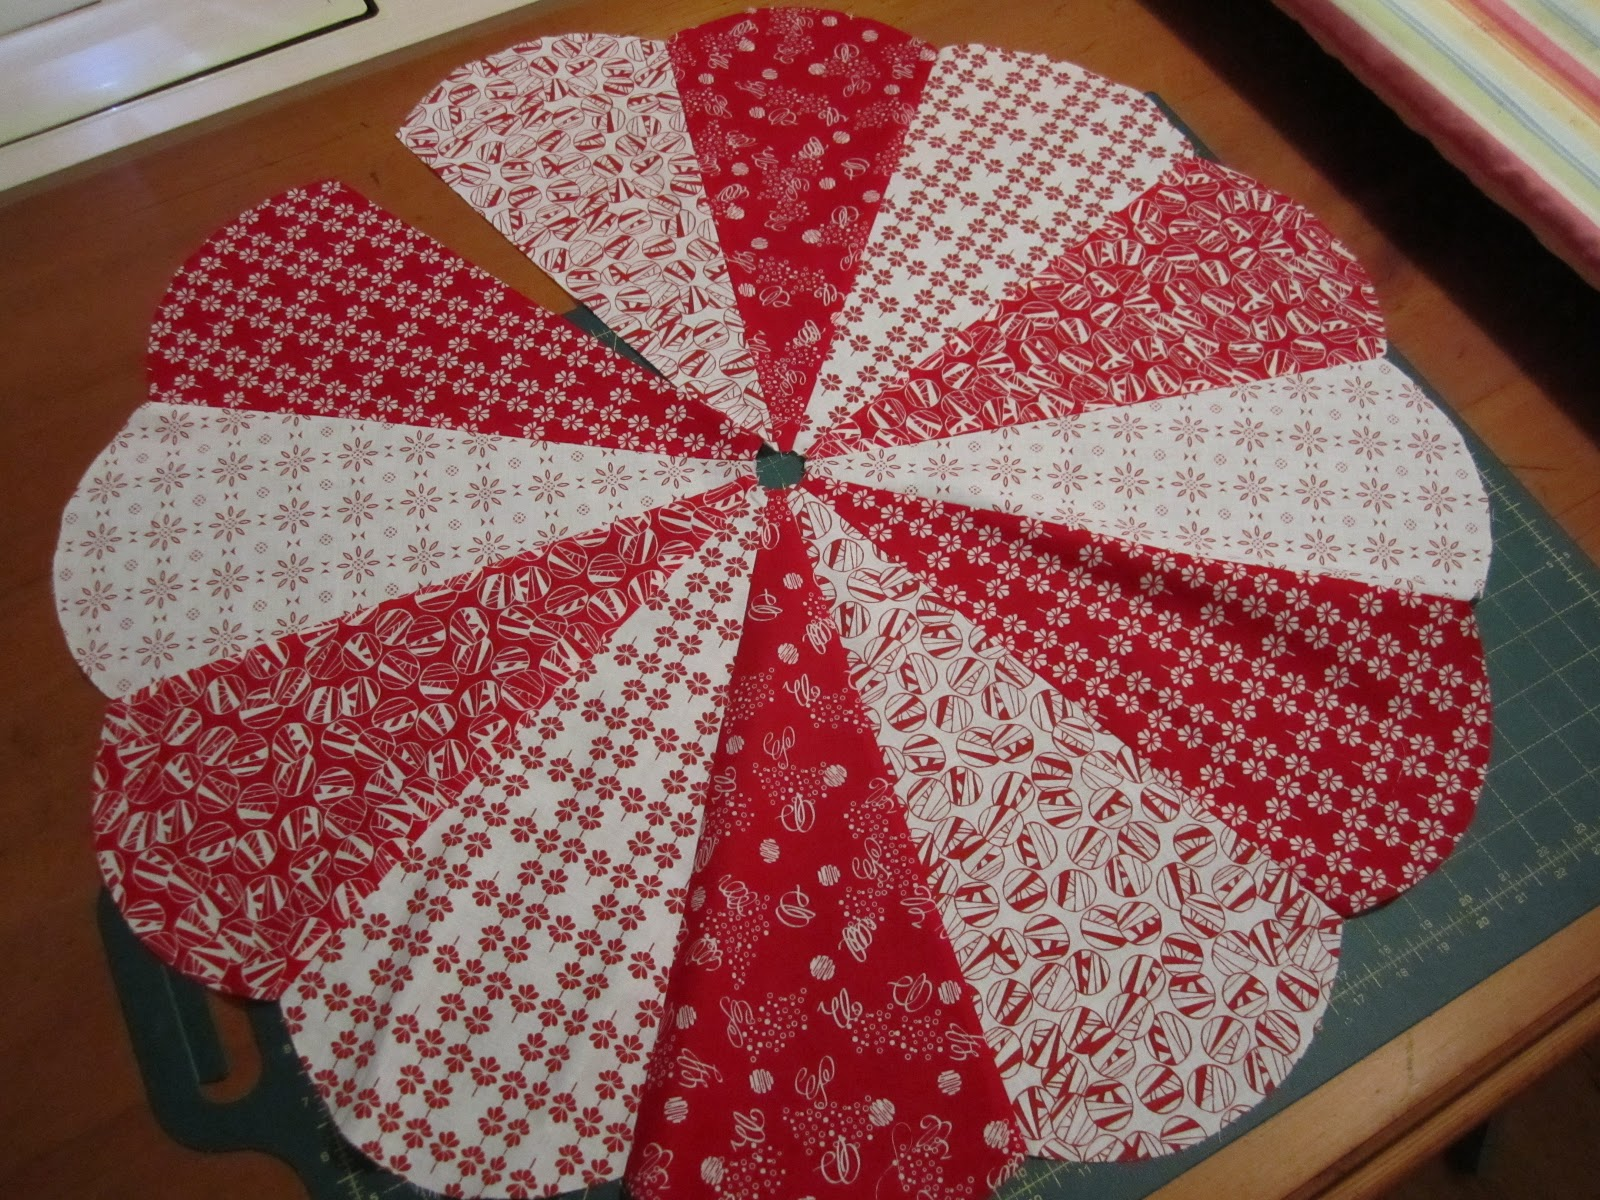 Quilting Pattern For Christmas Tree Skirt : 20 Free Quilted Christmas Tree Skirt Patterns Guide Patterns